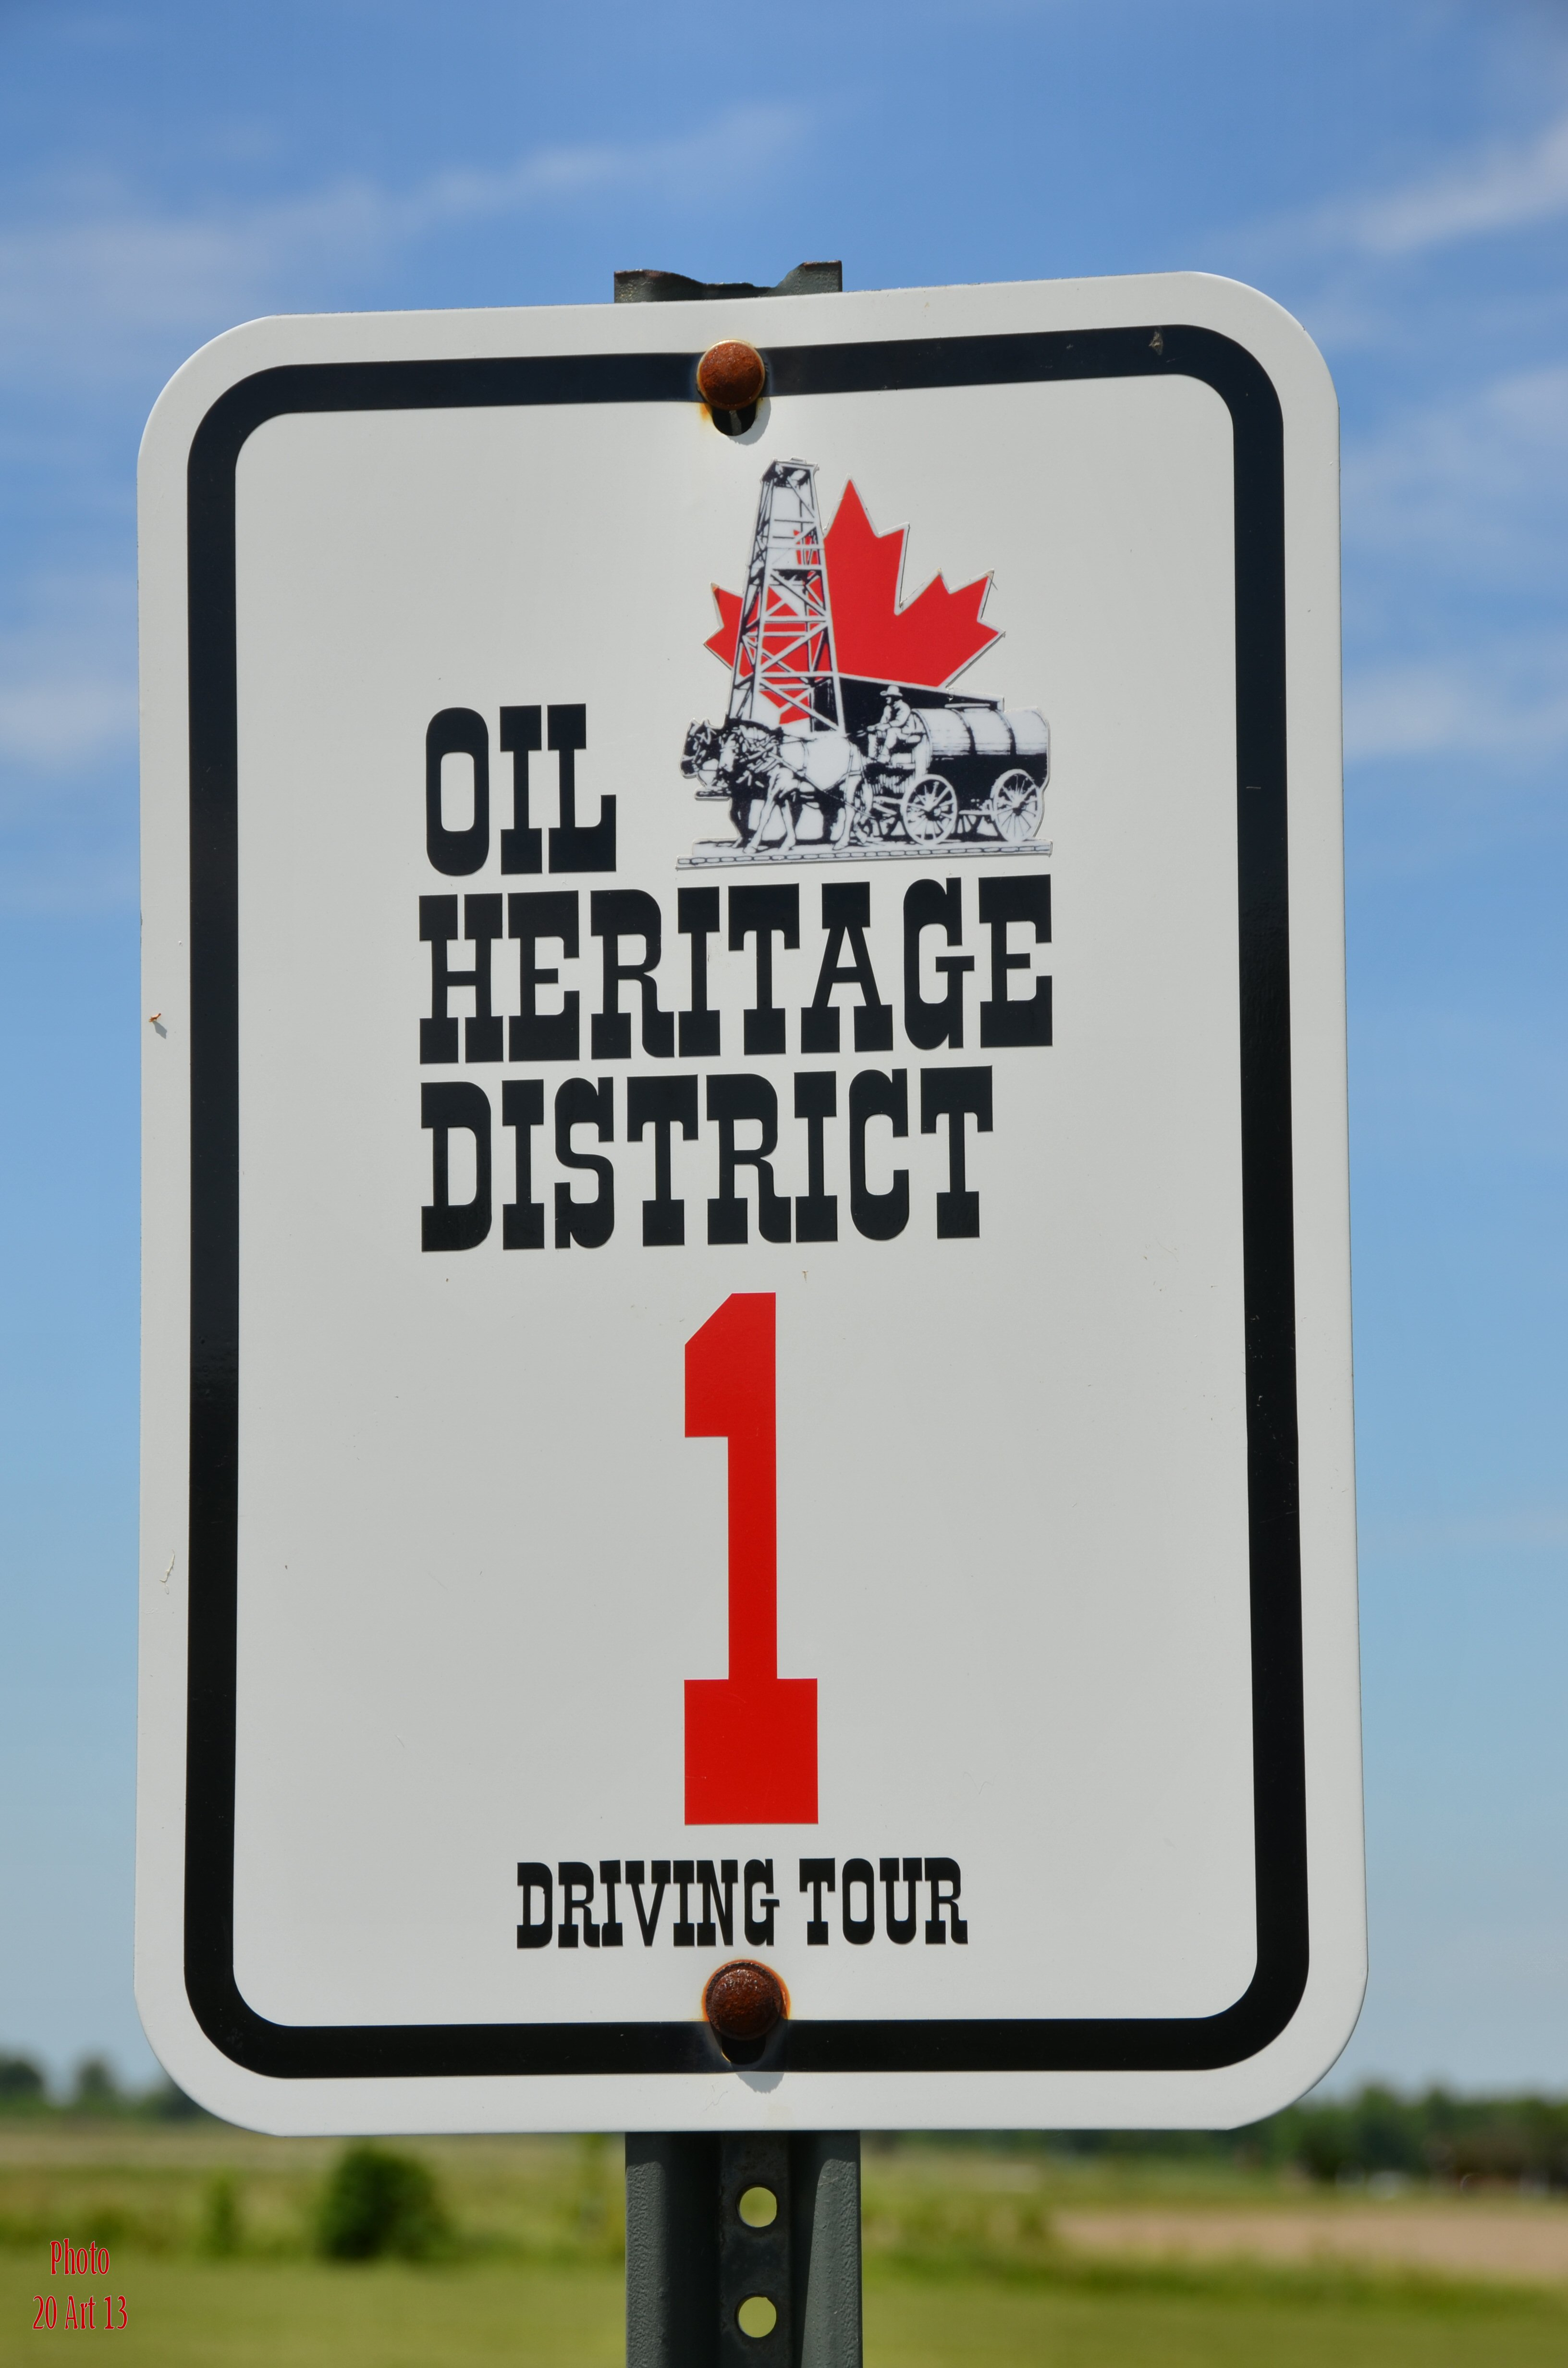 Sign for driving tour.